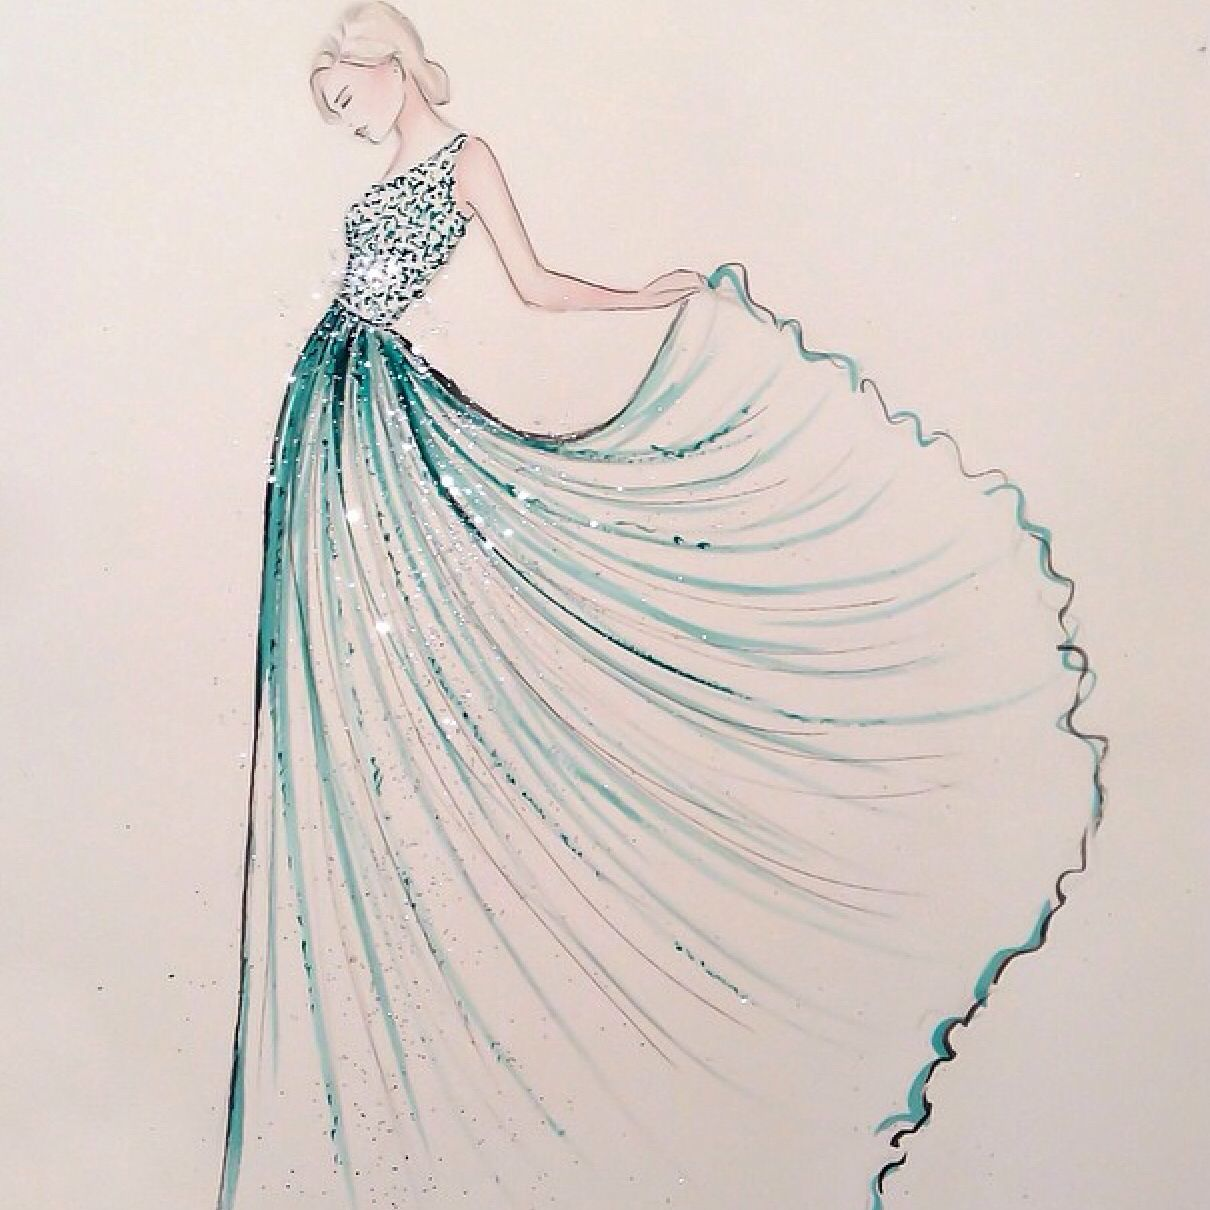 Beauteous Personal Use Easy How To Draw Dresses How To Draw Dresses App Somehow That Was Everything Easy Dress Drawing At Free She Lost Him But She Found Herself wedding dress How To Draw Dresses